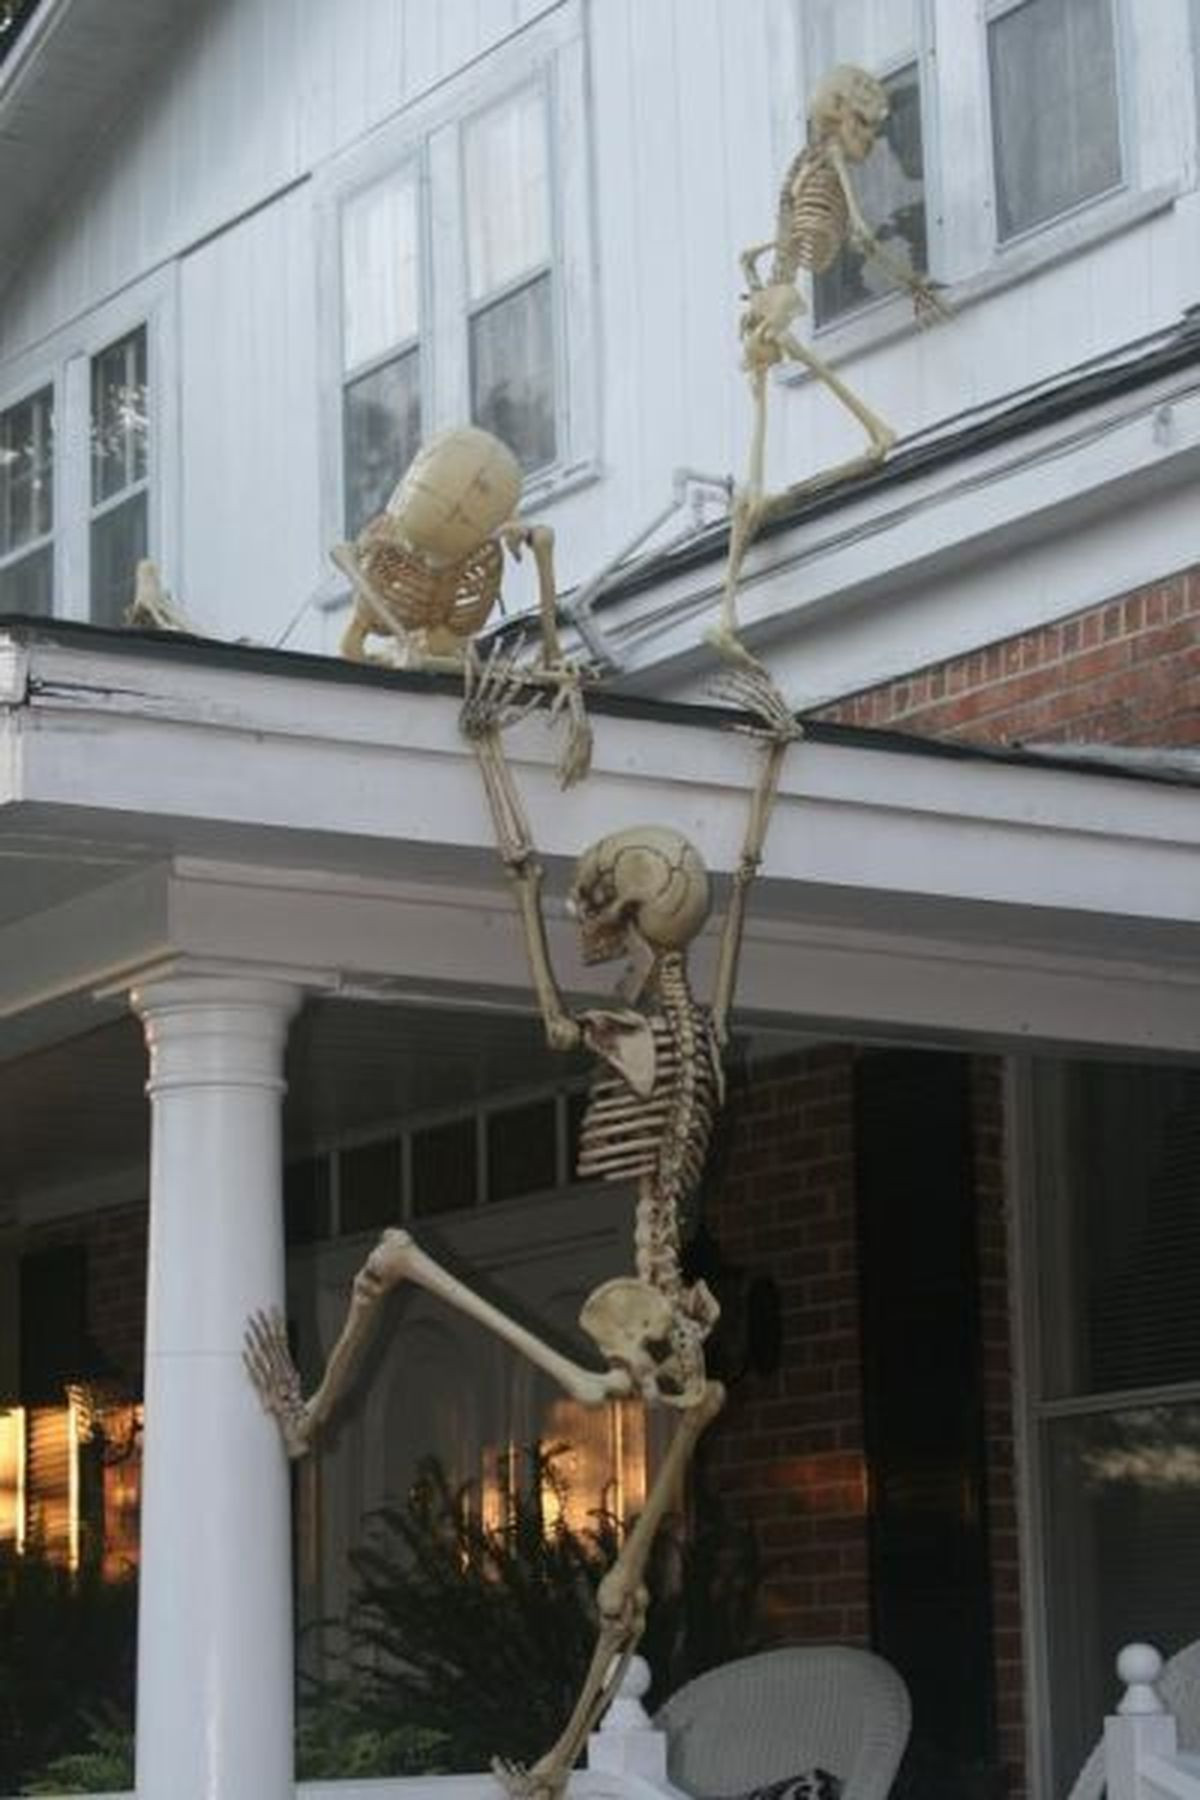 Porch Halloween Decorations  plete List of Halloween Decorations Ideas In Your Home